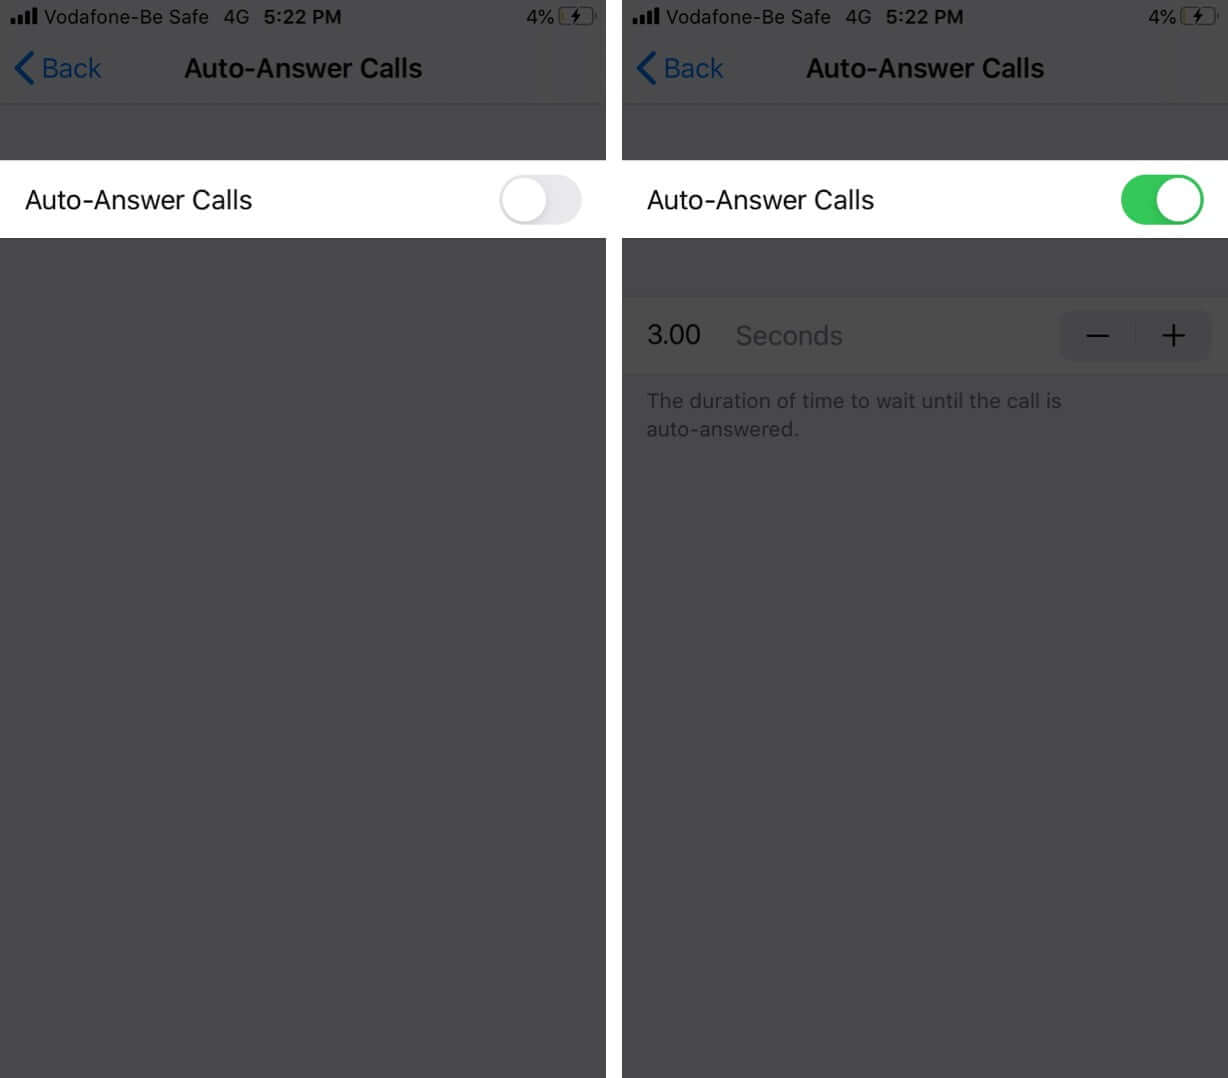 Enable Auto-Answer Calls on iPhone